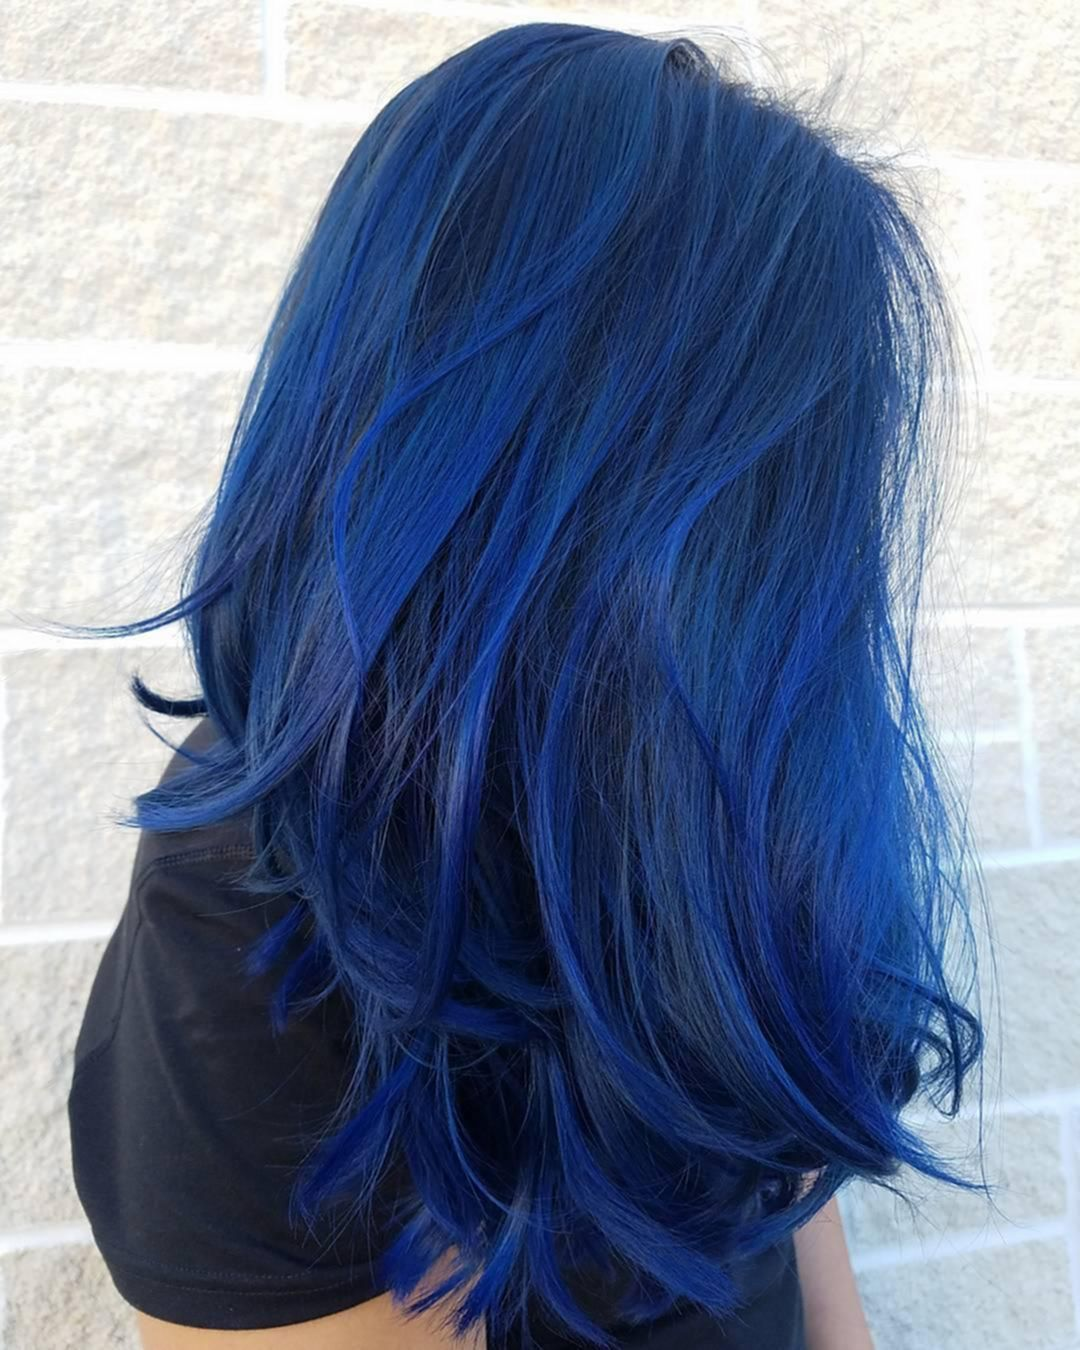 30 Best Navy Blue Hair Ideas For Elegant Women Elegant Woman